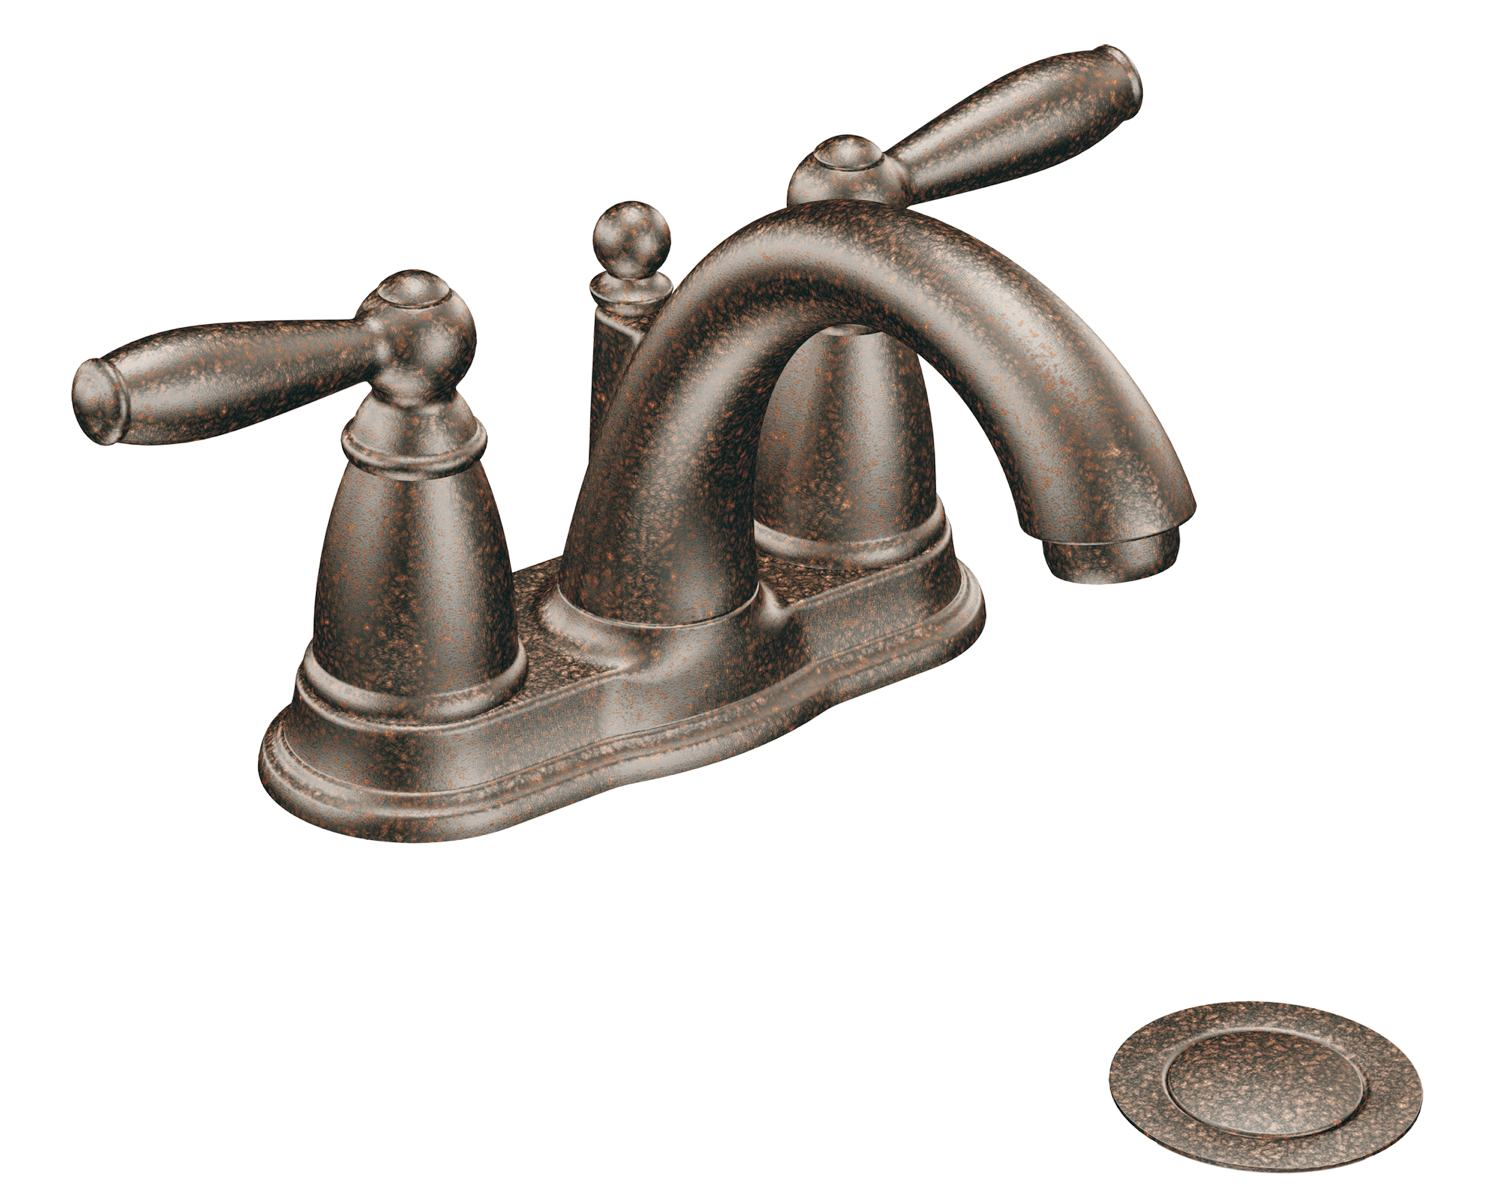 7 Faucet Finishes For Fabulous Bathrooms: Moen 6610ORB Brantford 2-Handle Lavatory Faucet With Drain